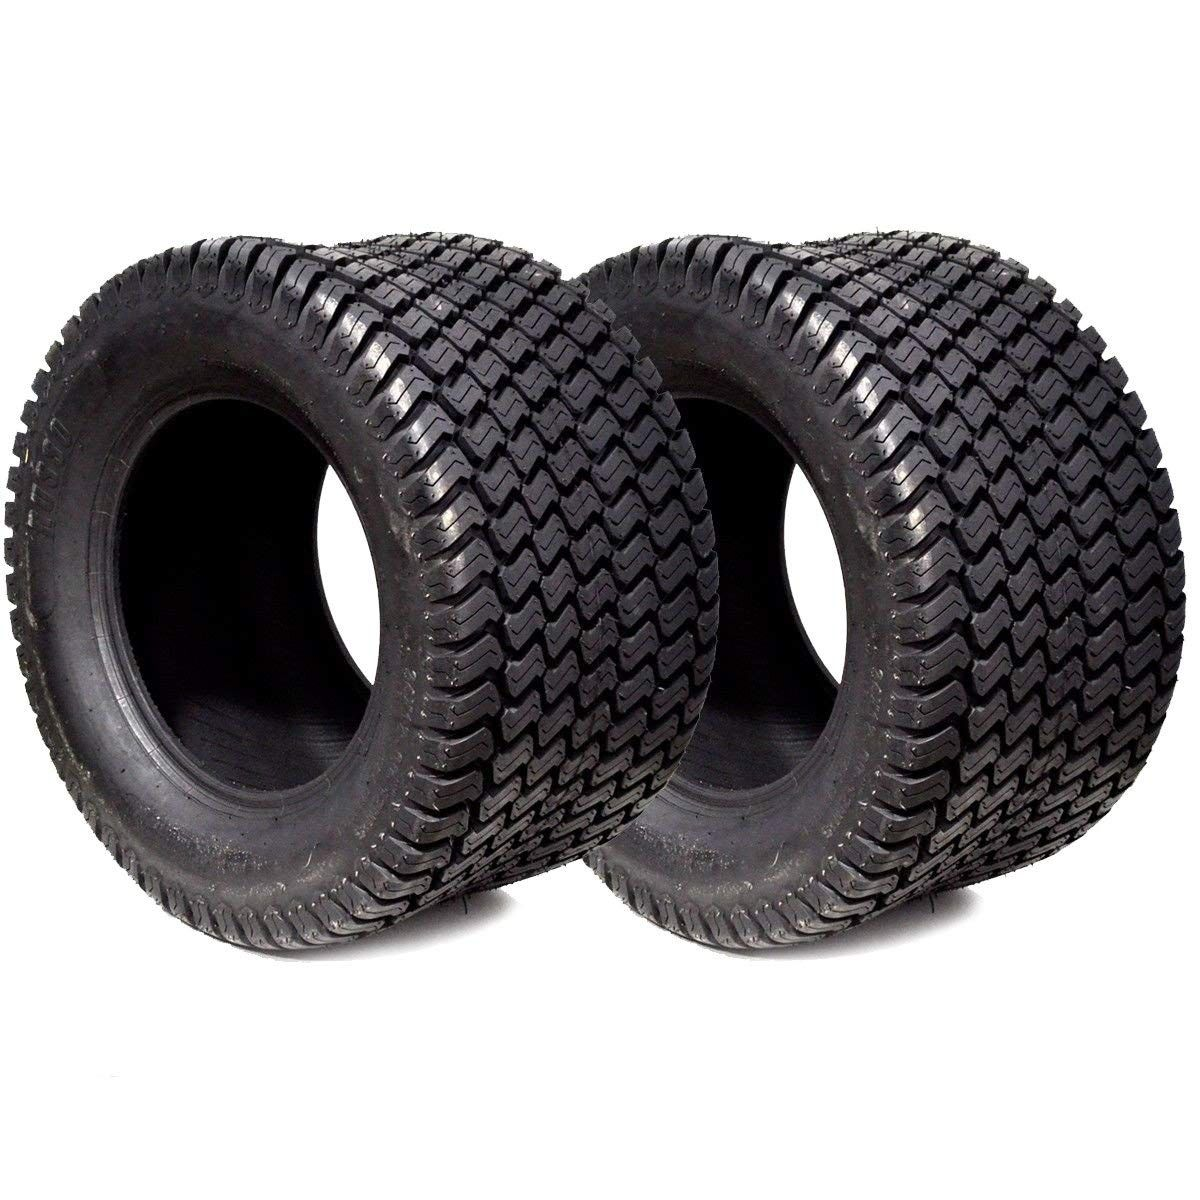 Replaces Kubota 2pk 23x9 5 12 23x9 5x12 23x9 50x12 23x9 50 12 Lawn And Garden Mower Golf Cart Turf Tires 4ply 4pr Lawn And Garden Lawn Mower Tractor Golf Carts